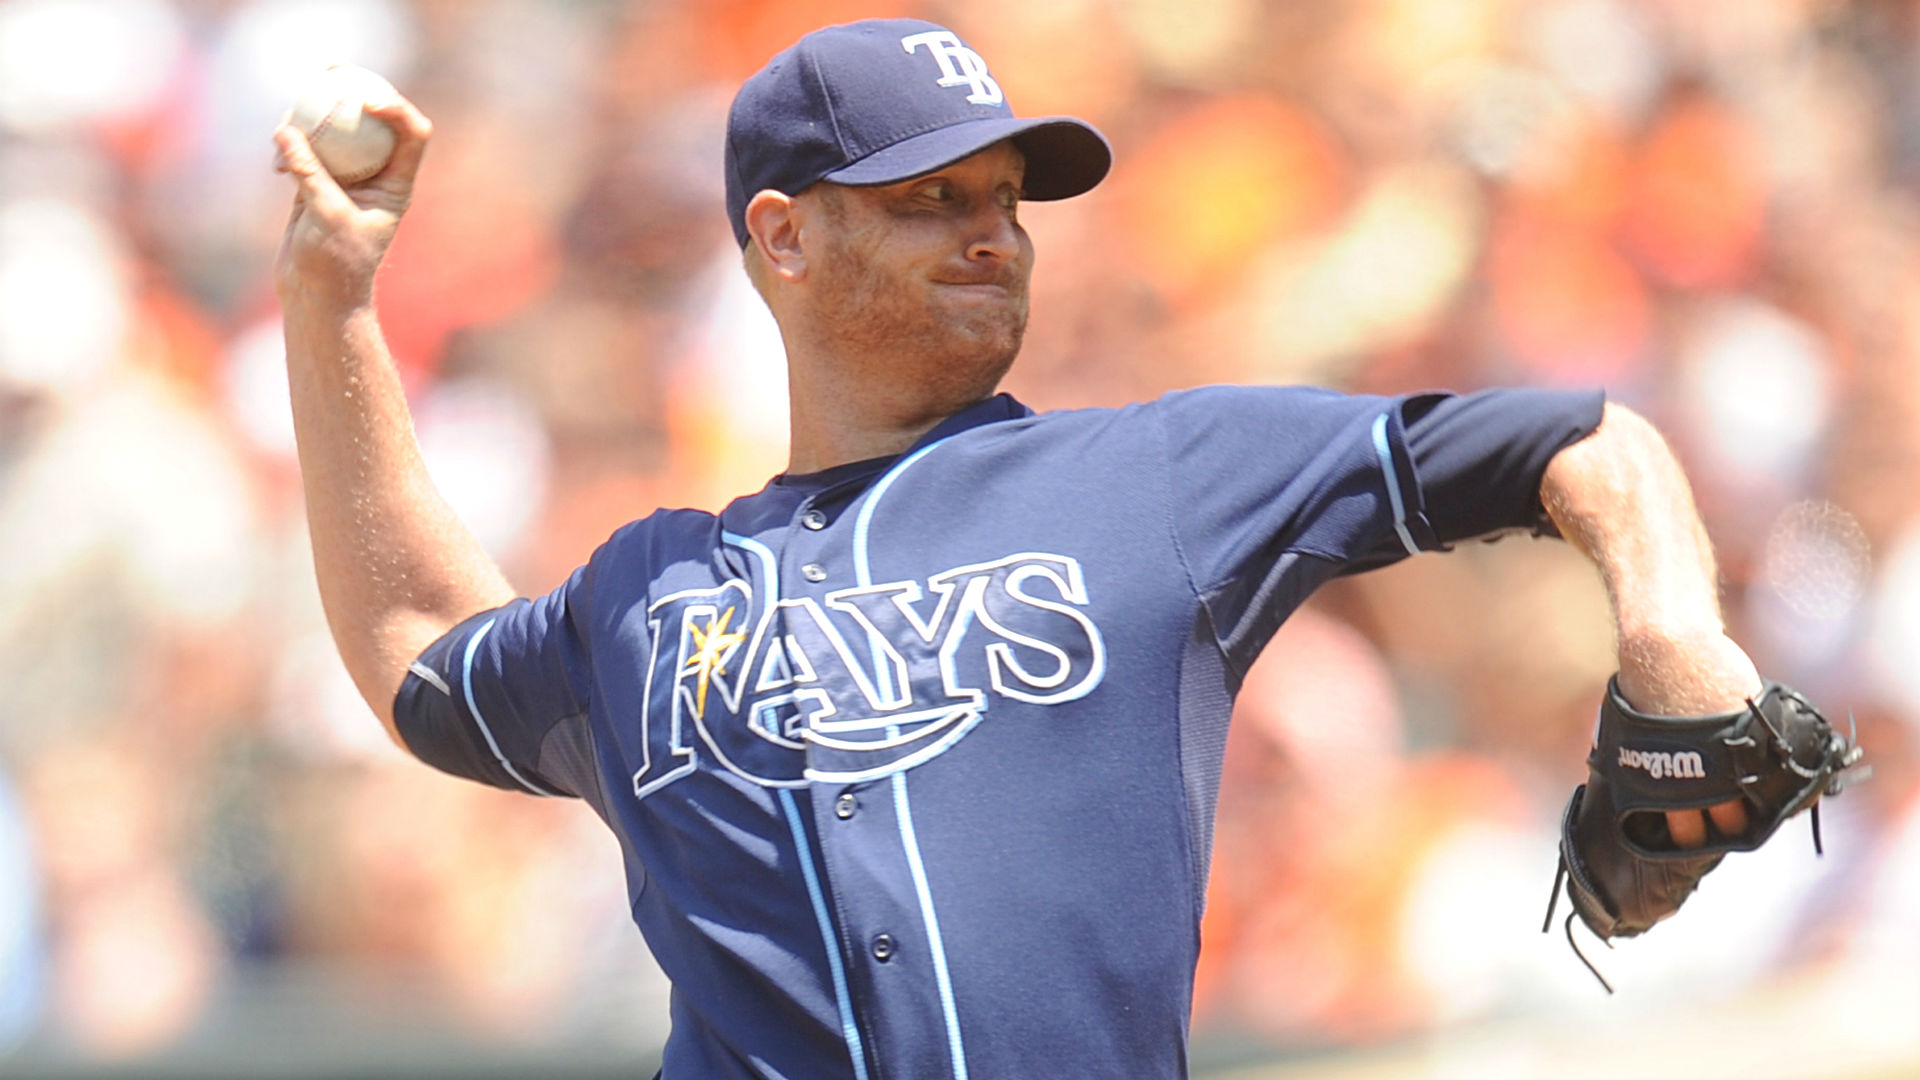 Report: Partial elbow tear puts Rays pitcher Alex Cobb's season in doubt